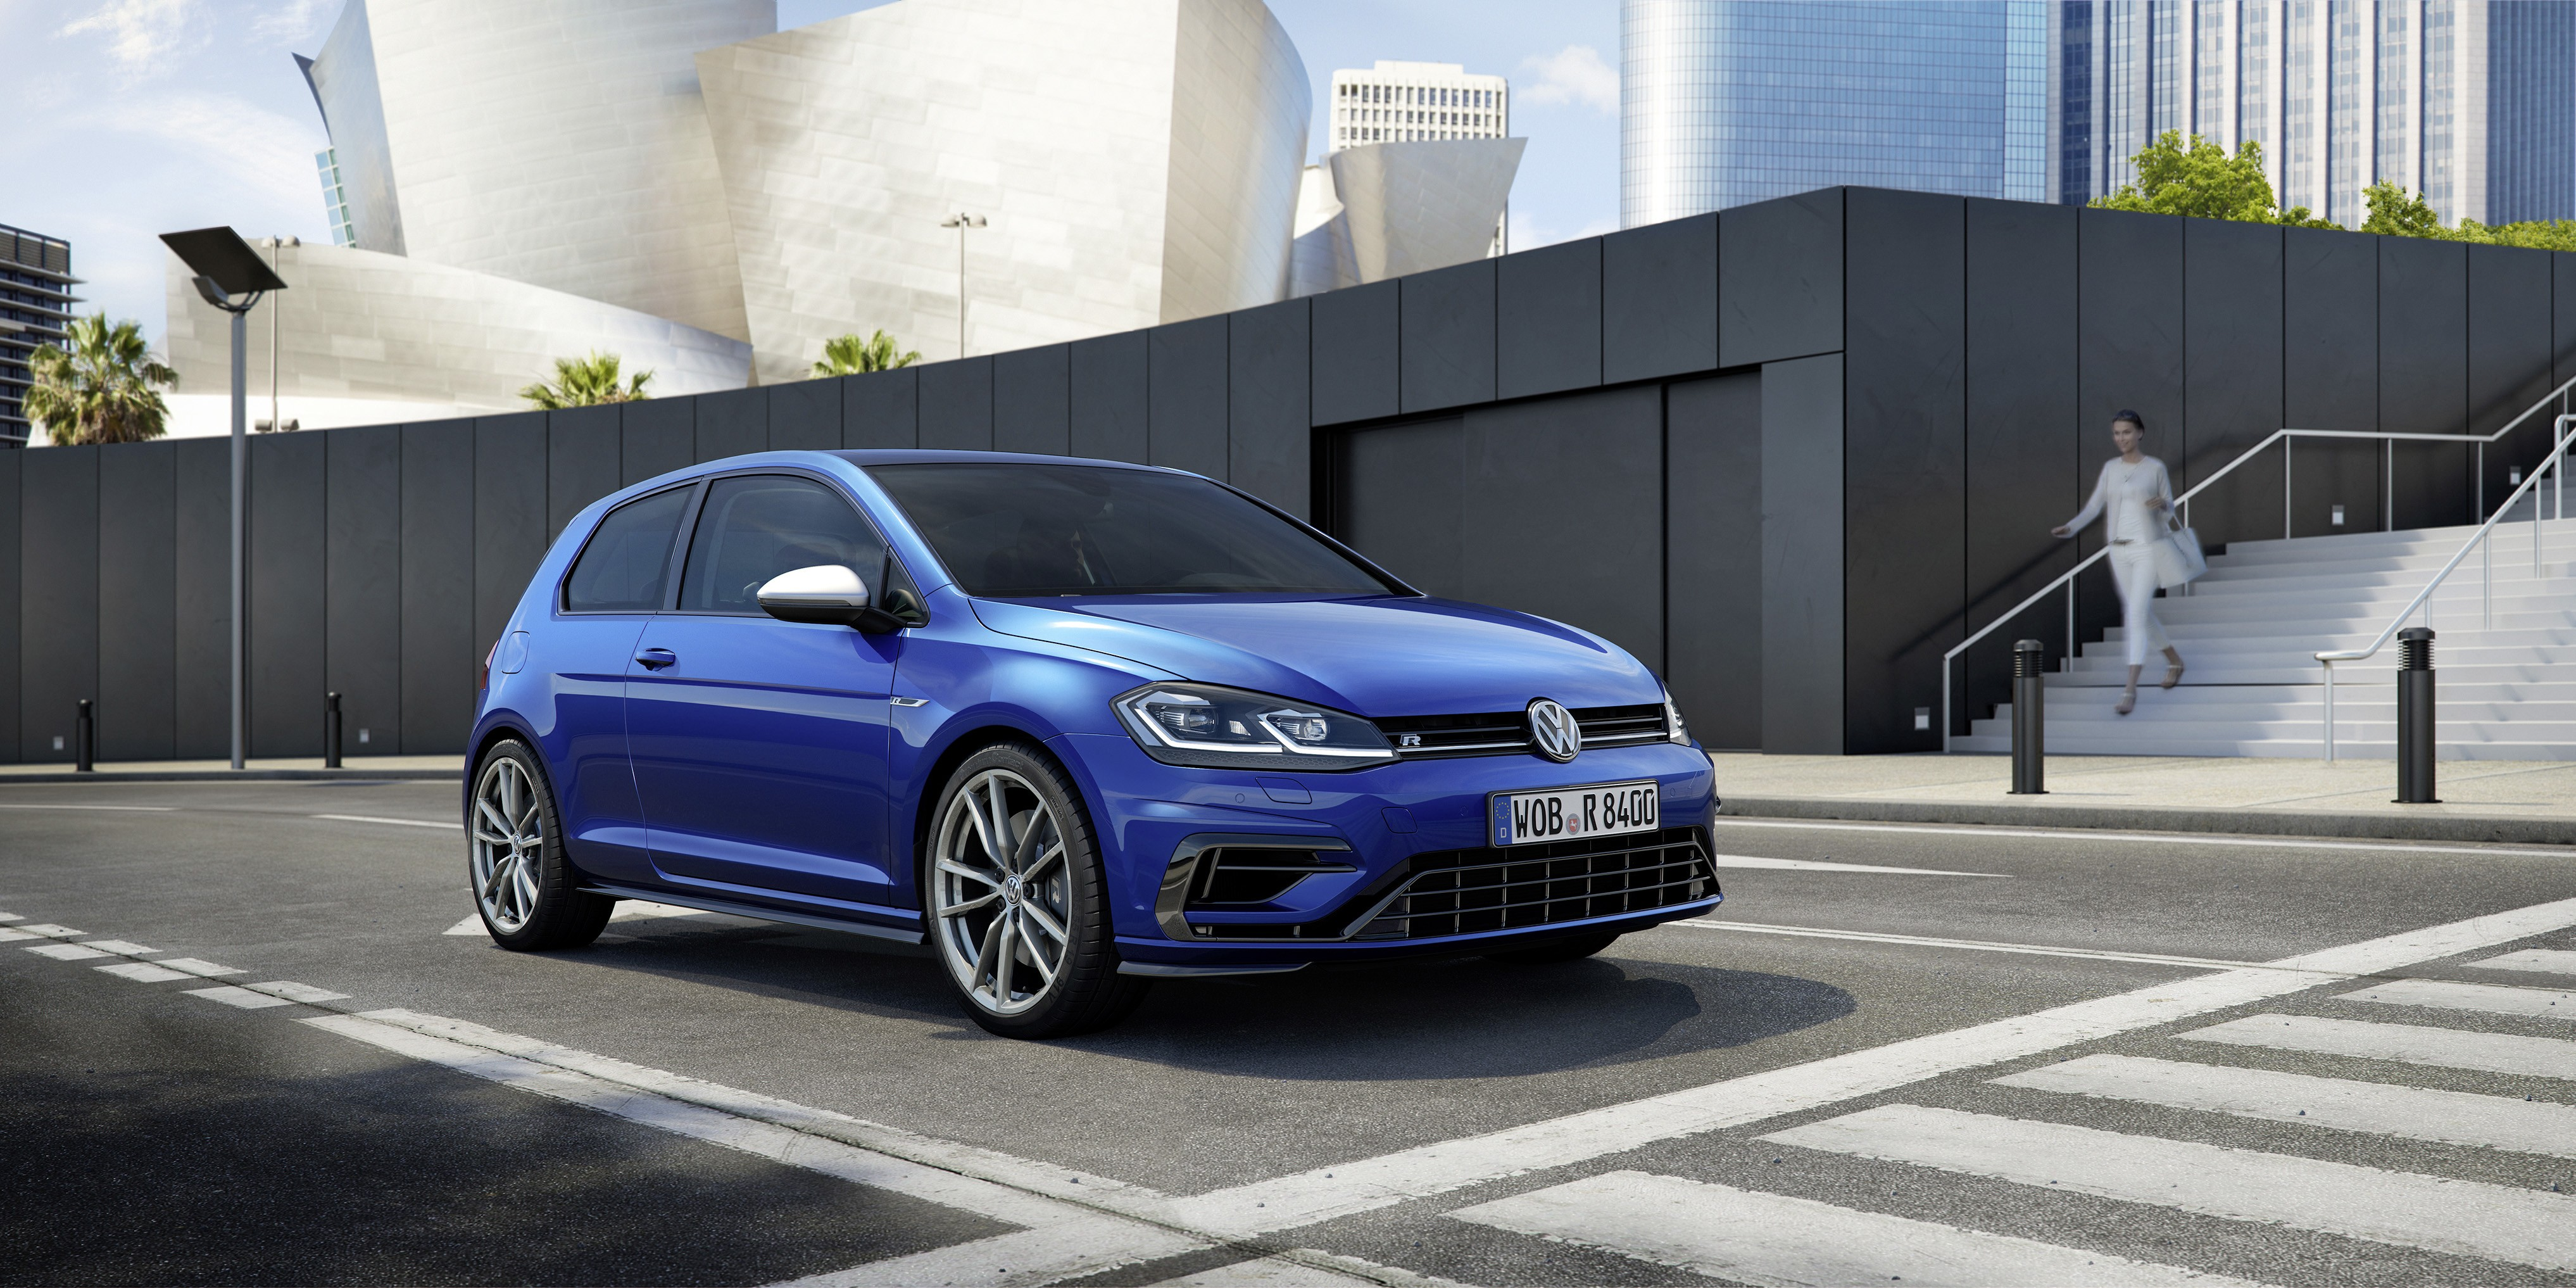 2018 Volkswagen Golf R Facelift Will Still Have 292 HP in the U.S.